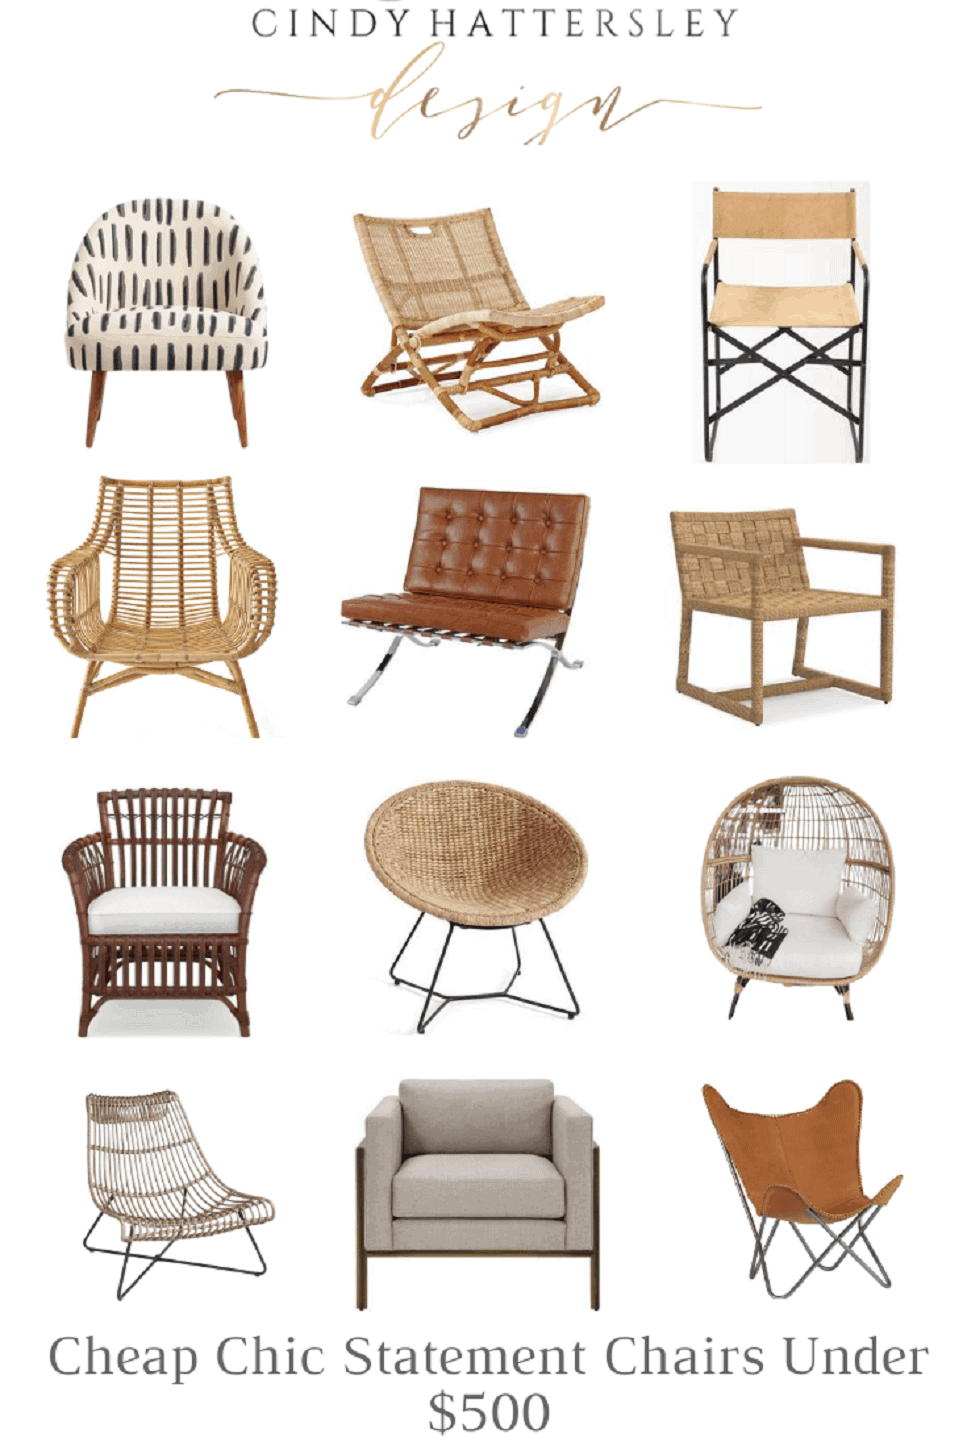 Cindy Hattersley's list of CHIC STATEMENT CHAIRS